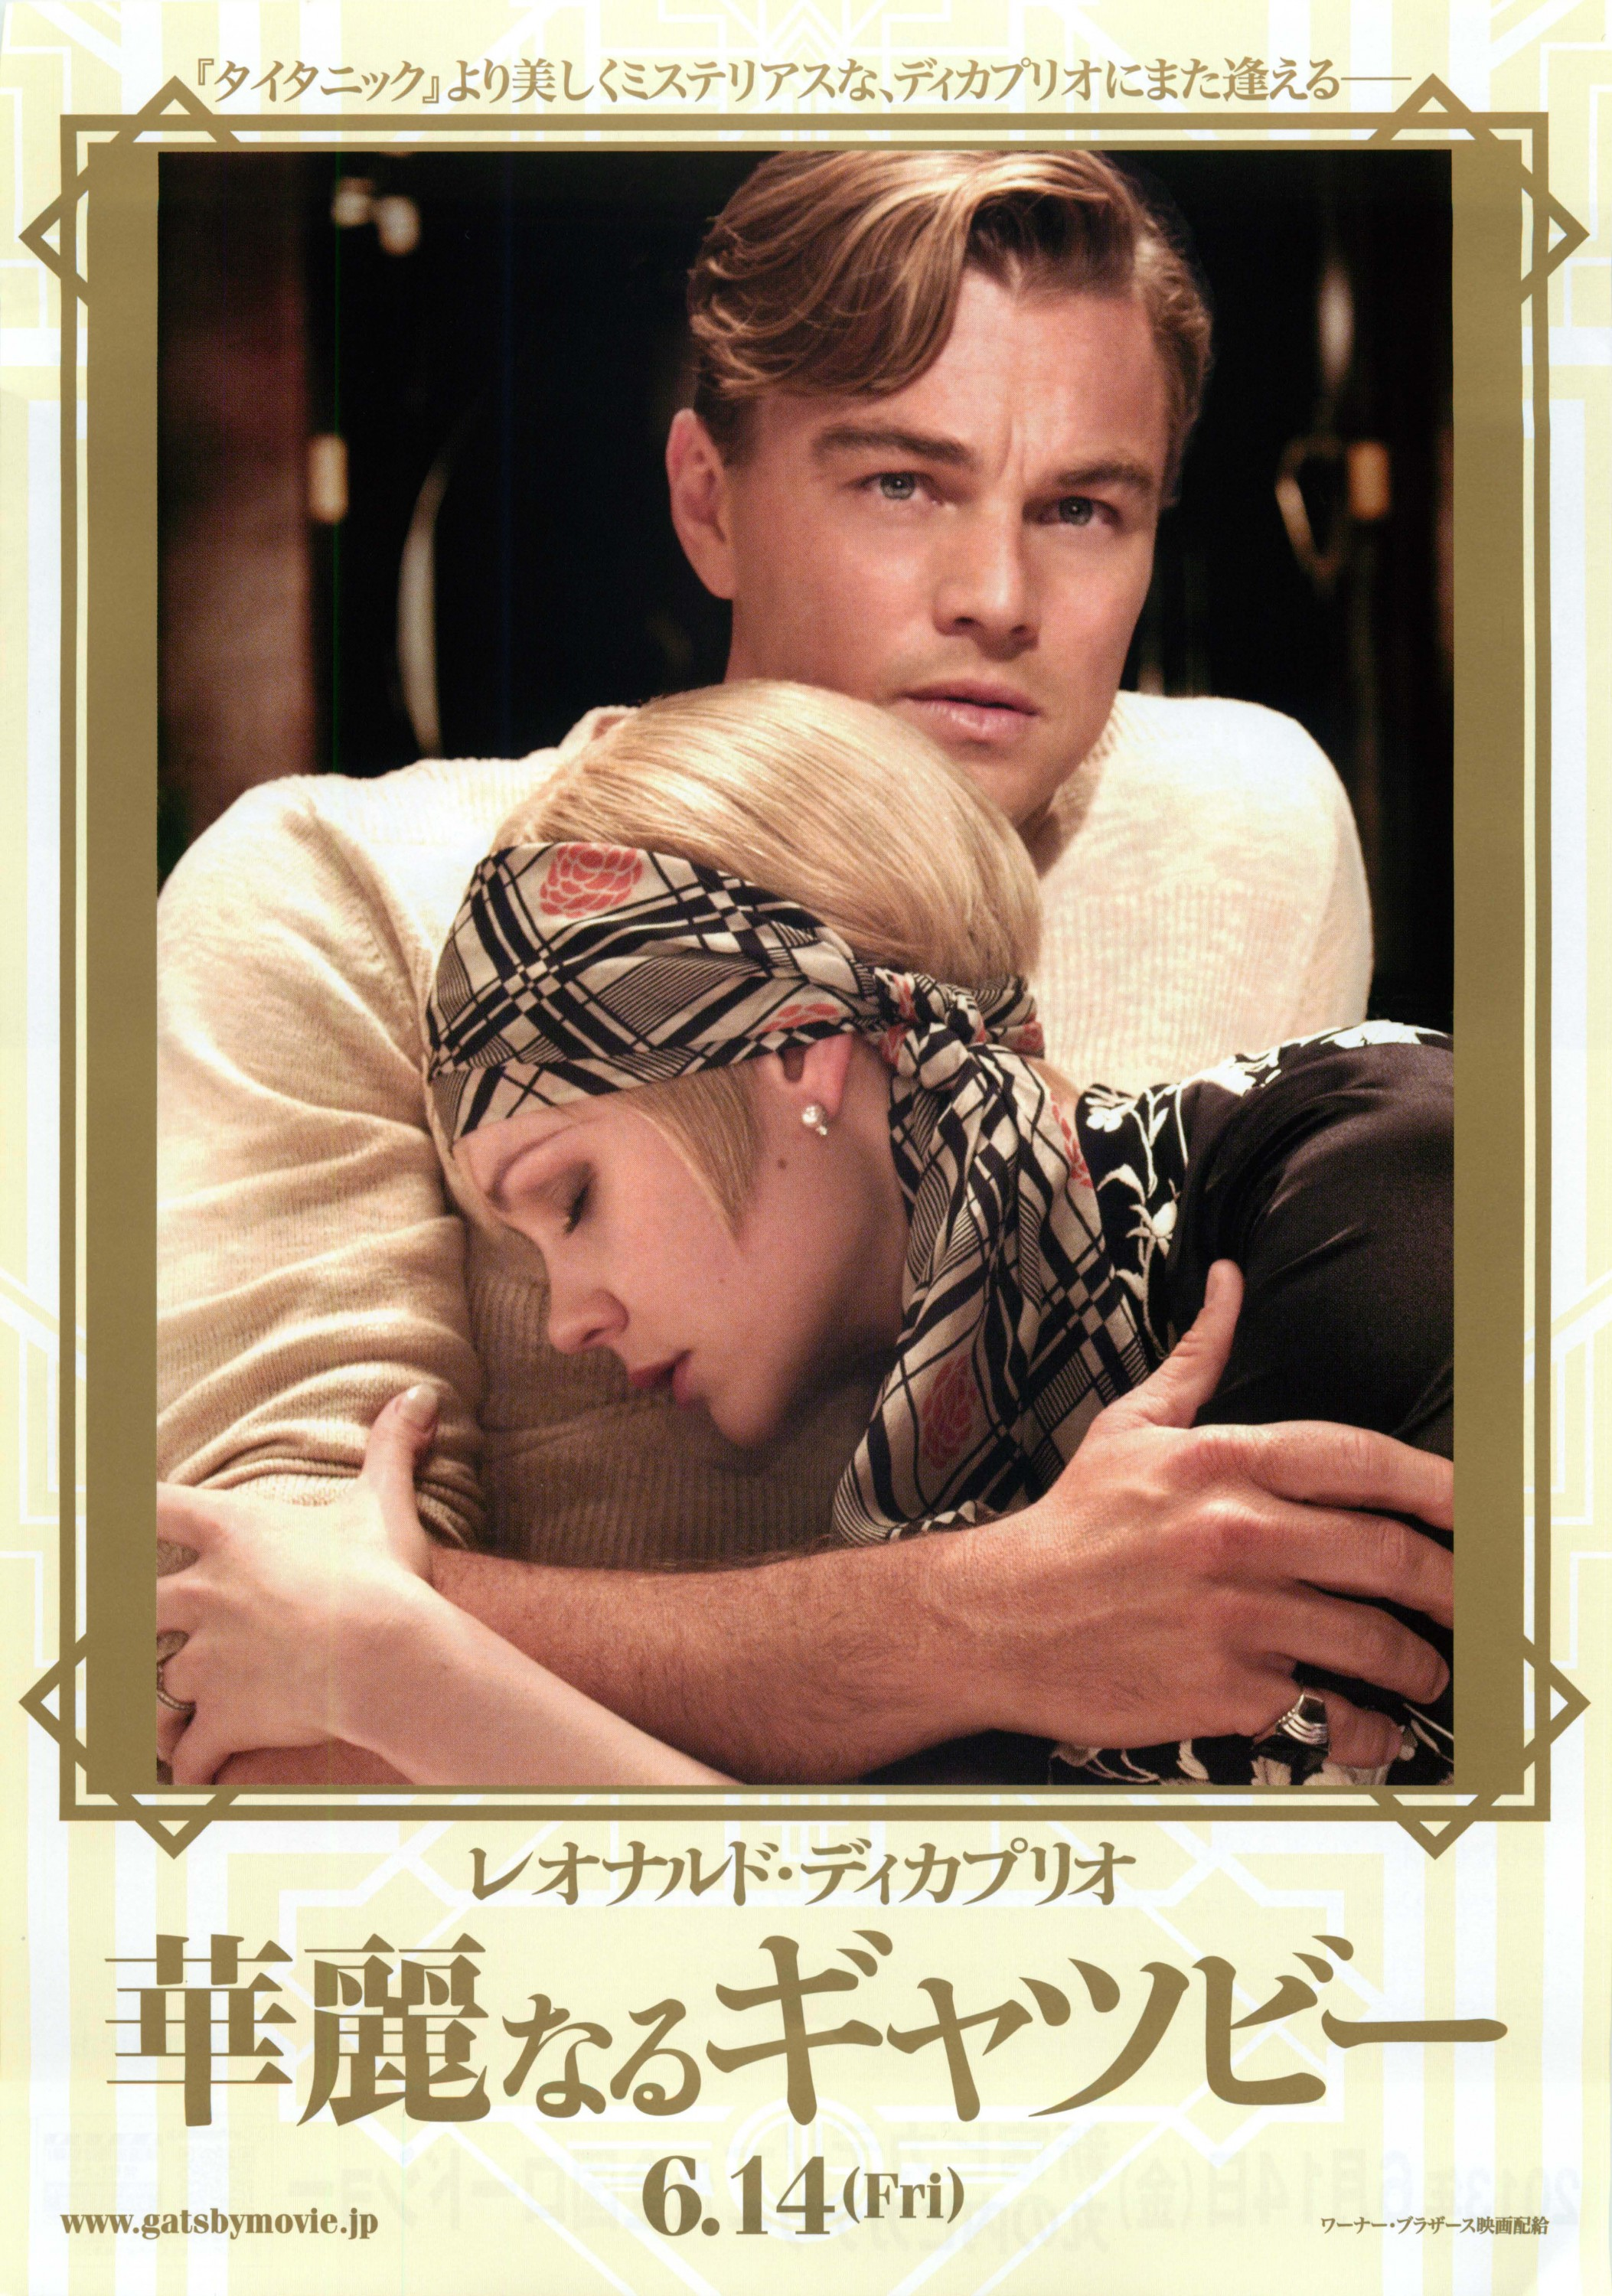 The-Great-Gatsby-Japanese-Poster